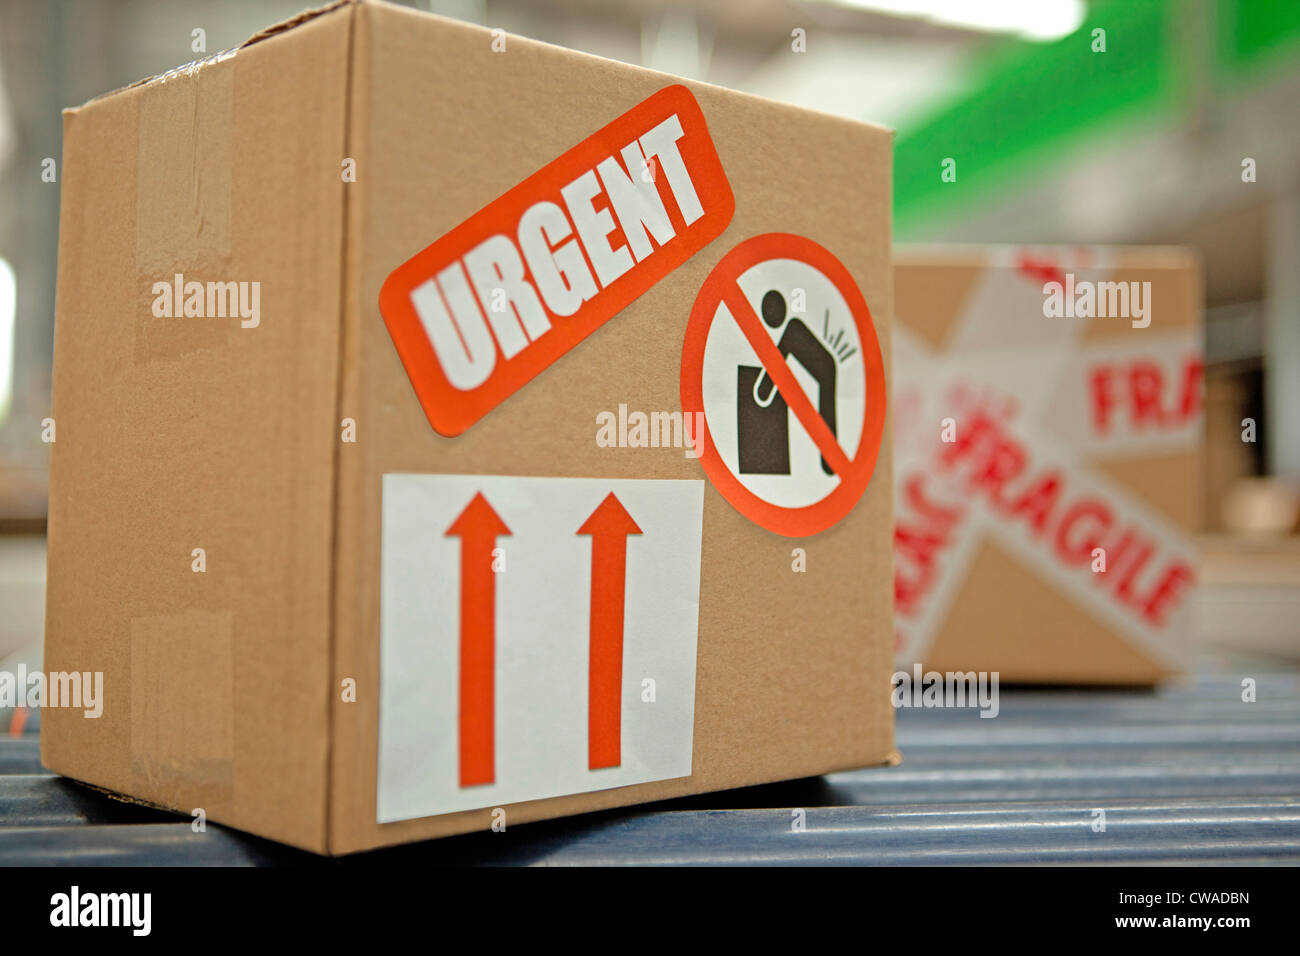 Cardboard box with warning stickers on conveyor belt - Stock Image